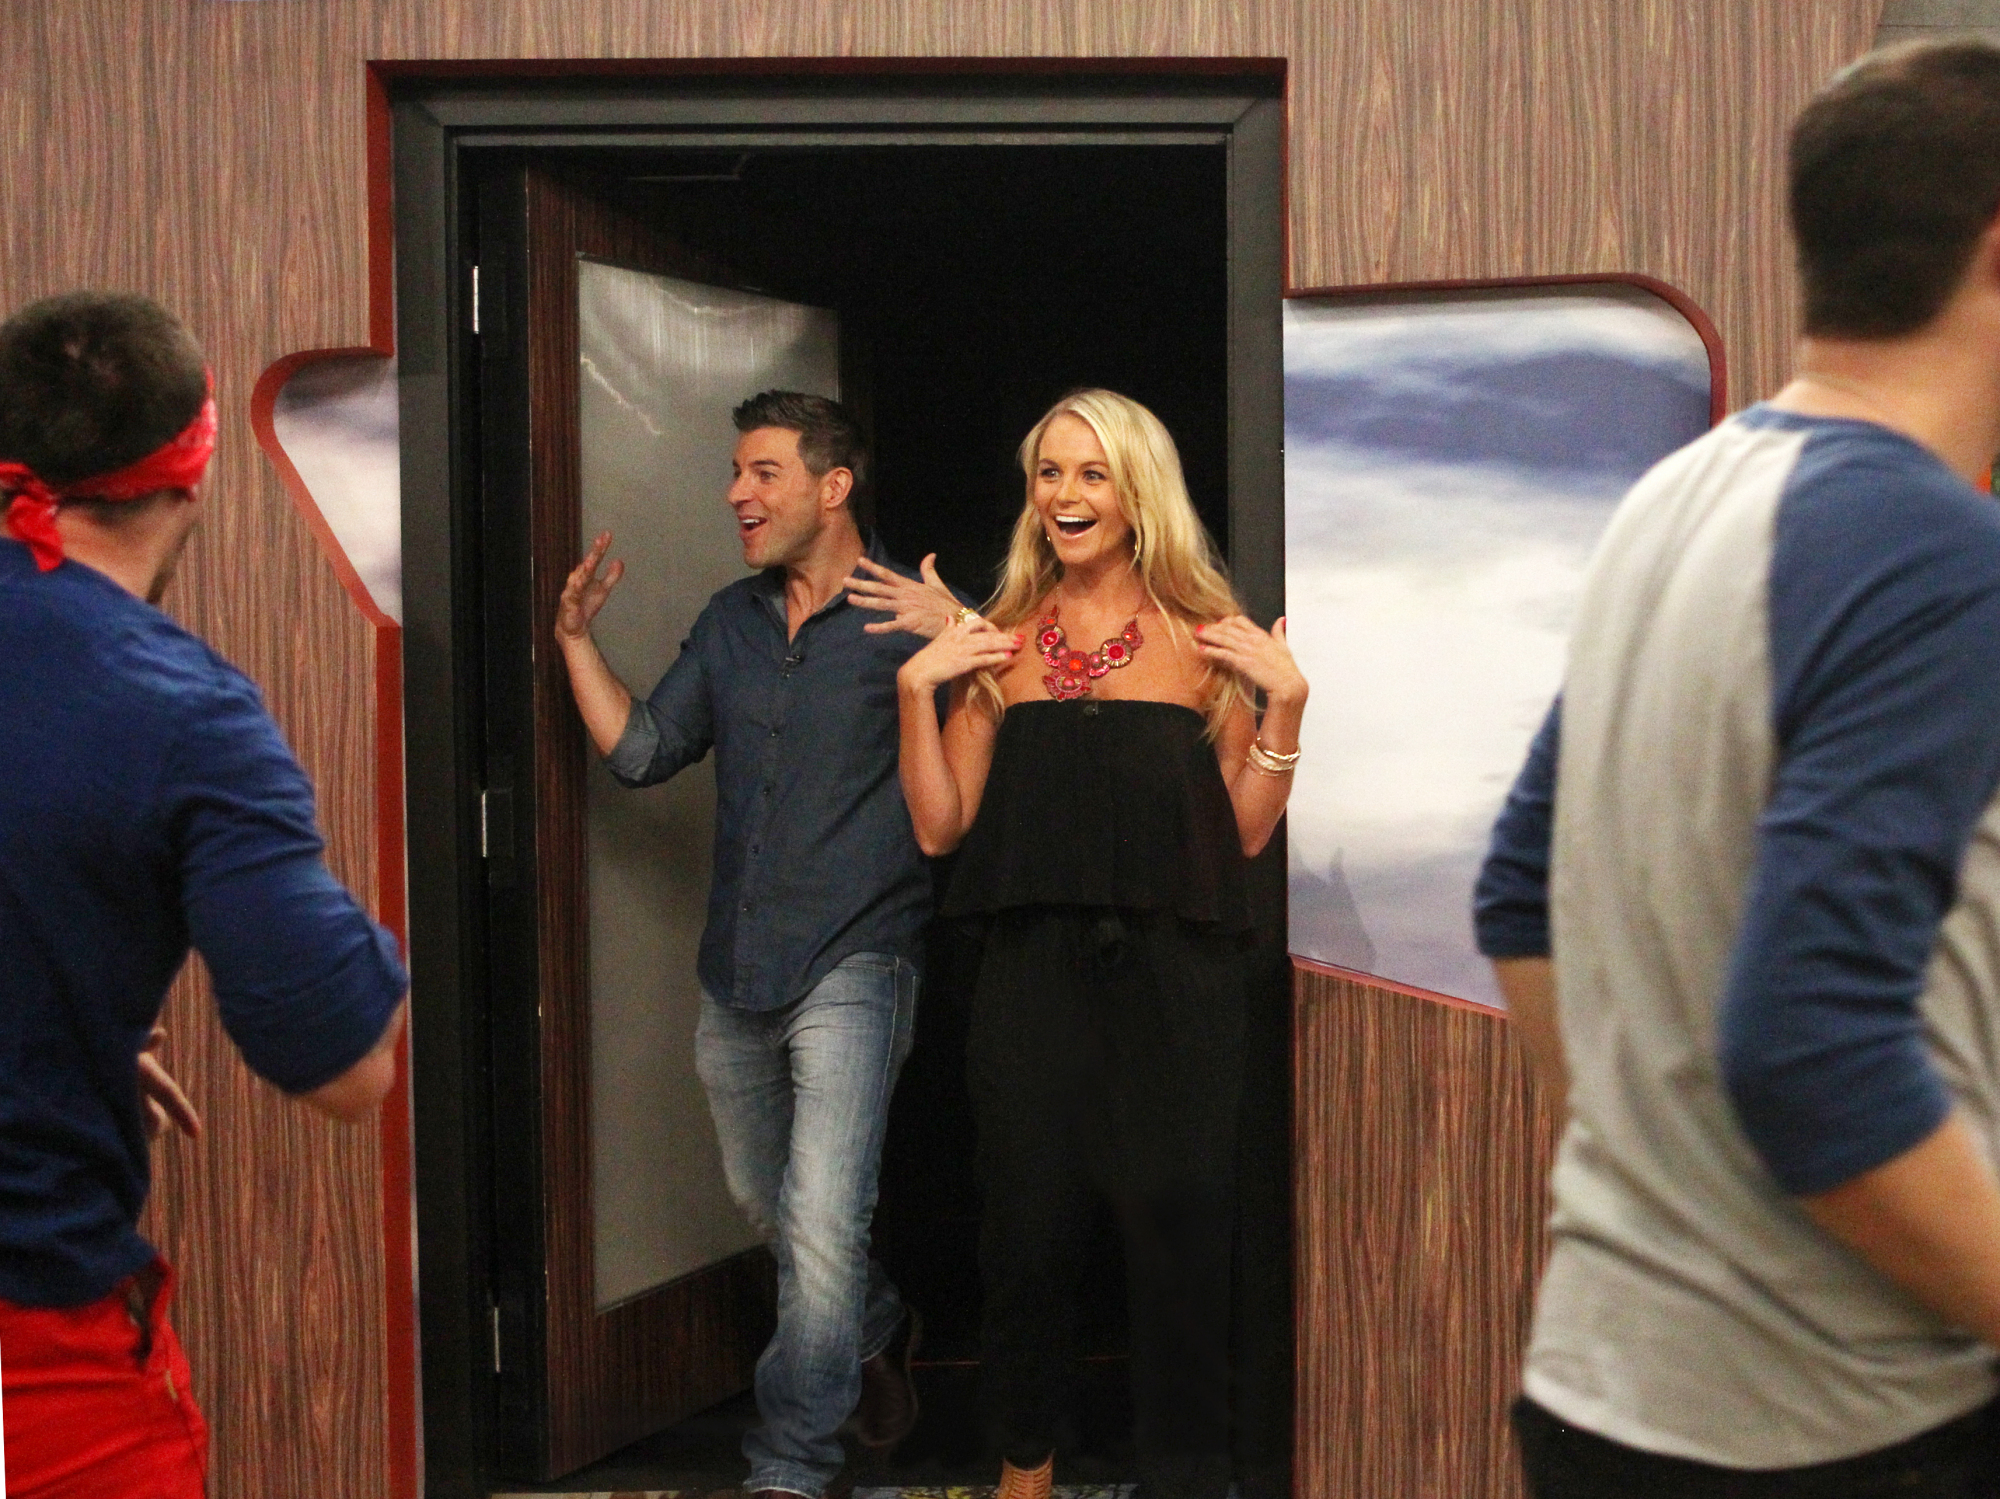 Jeff and Jordan enter the Big Brother house